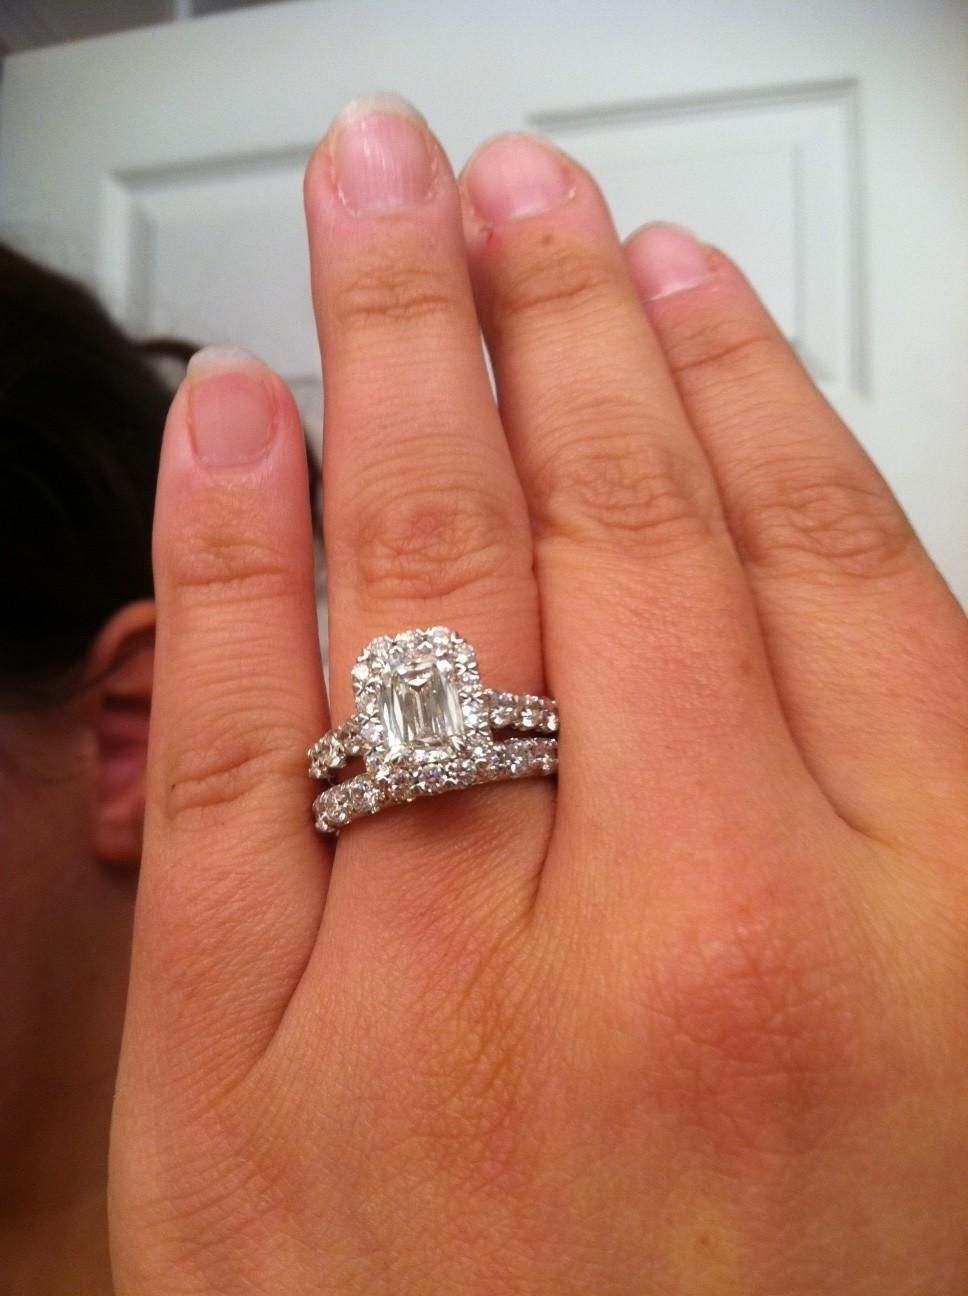 Tips For Buy Sell Jewelry DiamondsHow To Your Used And Engagement Ring Online